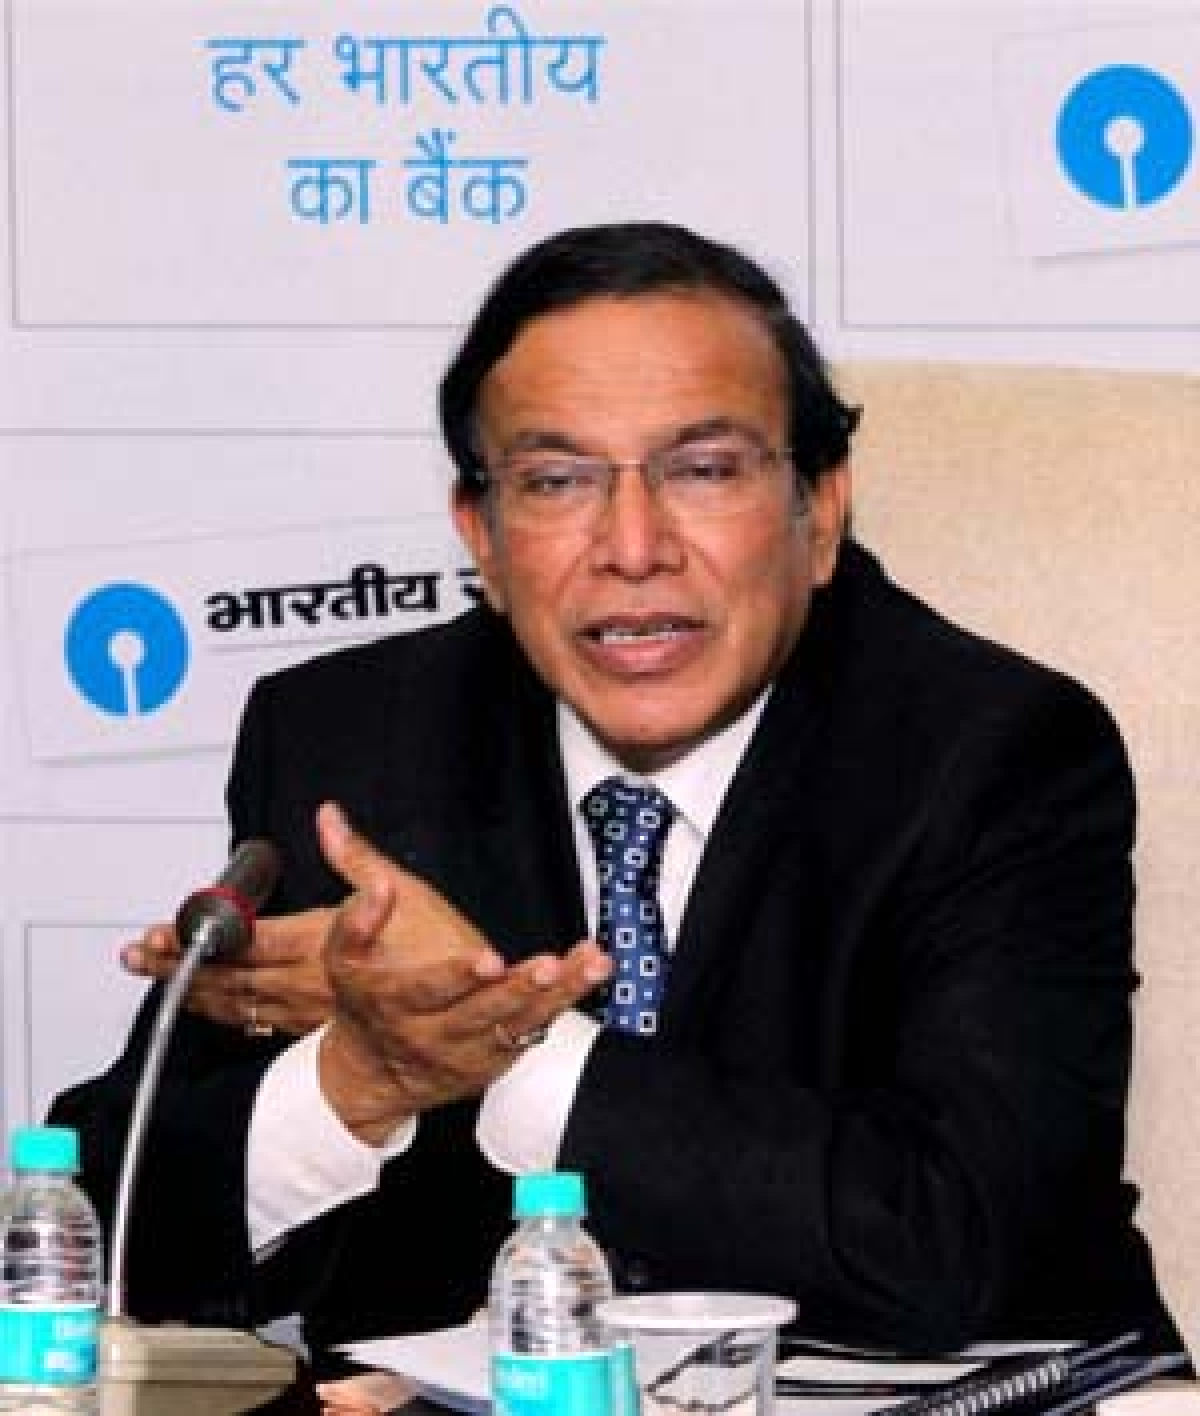 TOUGH TALK: Pratip Chaudhuri said the consortium of 17 banks have been meeting regularly to help the cash-strapped airline. SBI has over Rs 1,500-crore exposure